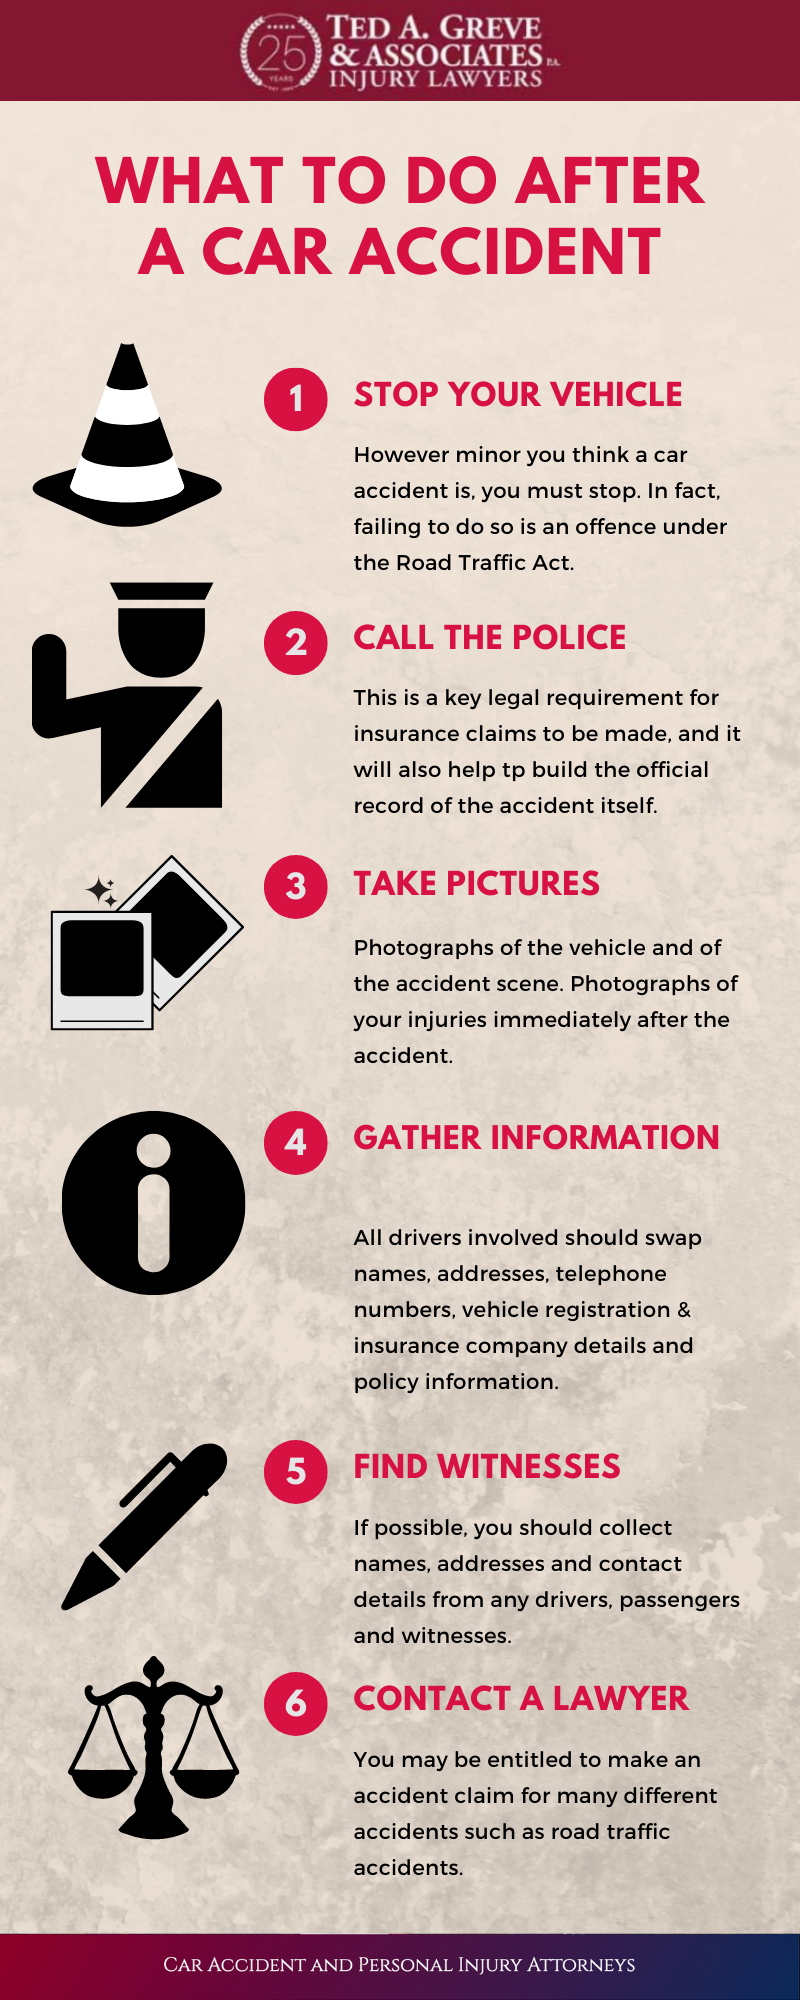 Ted Greve Charlotte Car Accident Infographic